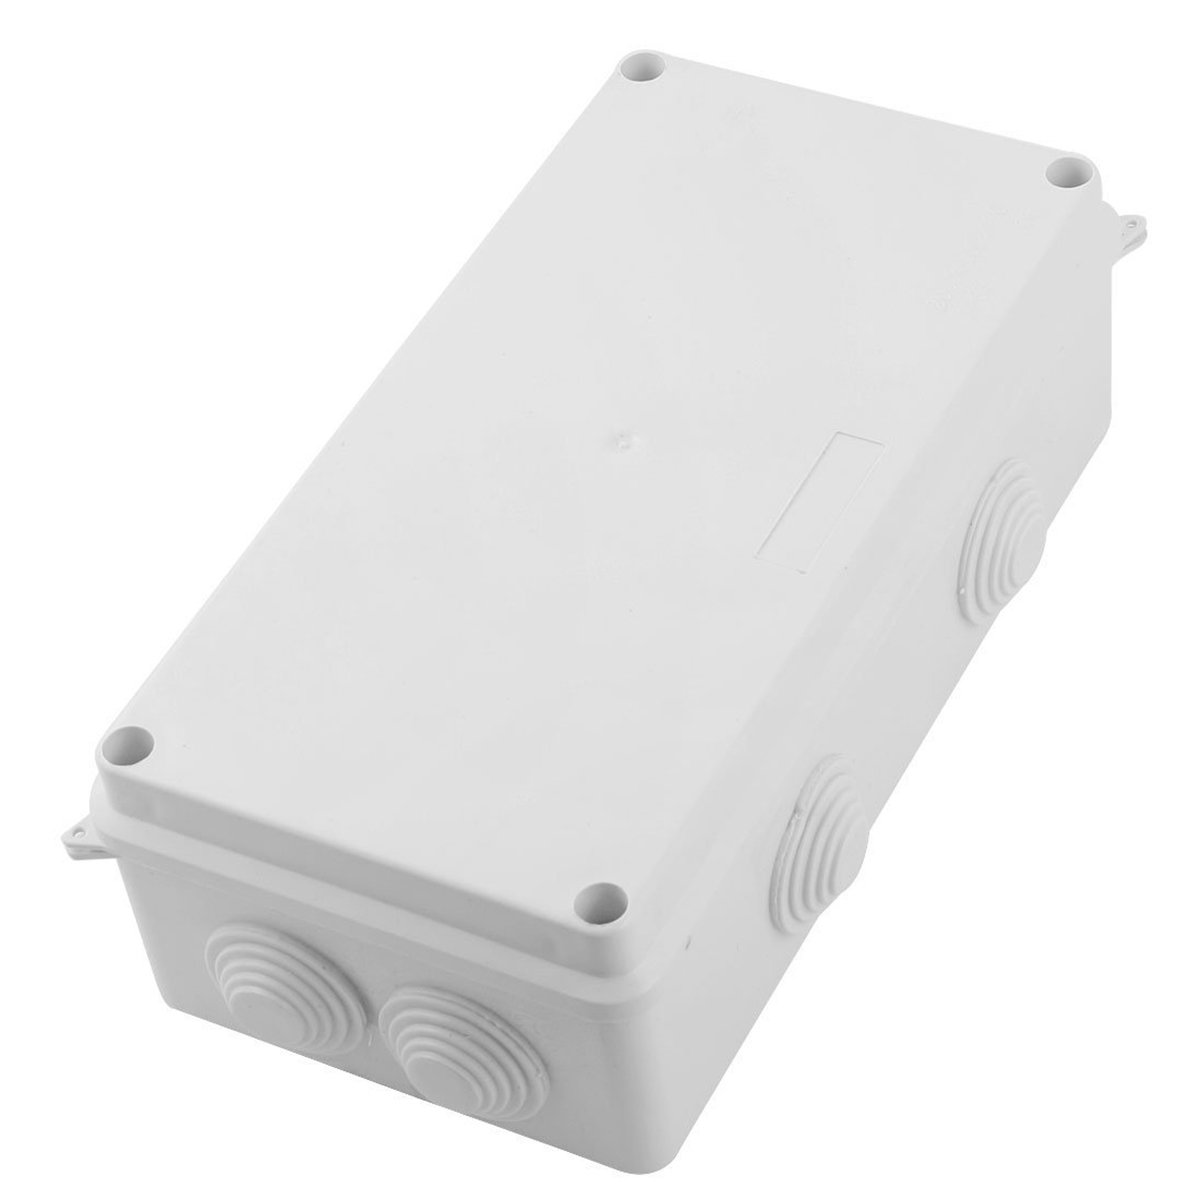 Saim DIY Junction Box 200mmx100mmx70mm Waterproof Plastic Electronic Project Box Junction Enclosure Case Box 9U-F3HS-ZFXB